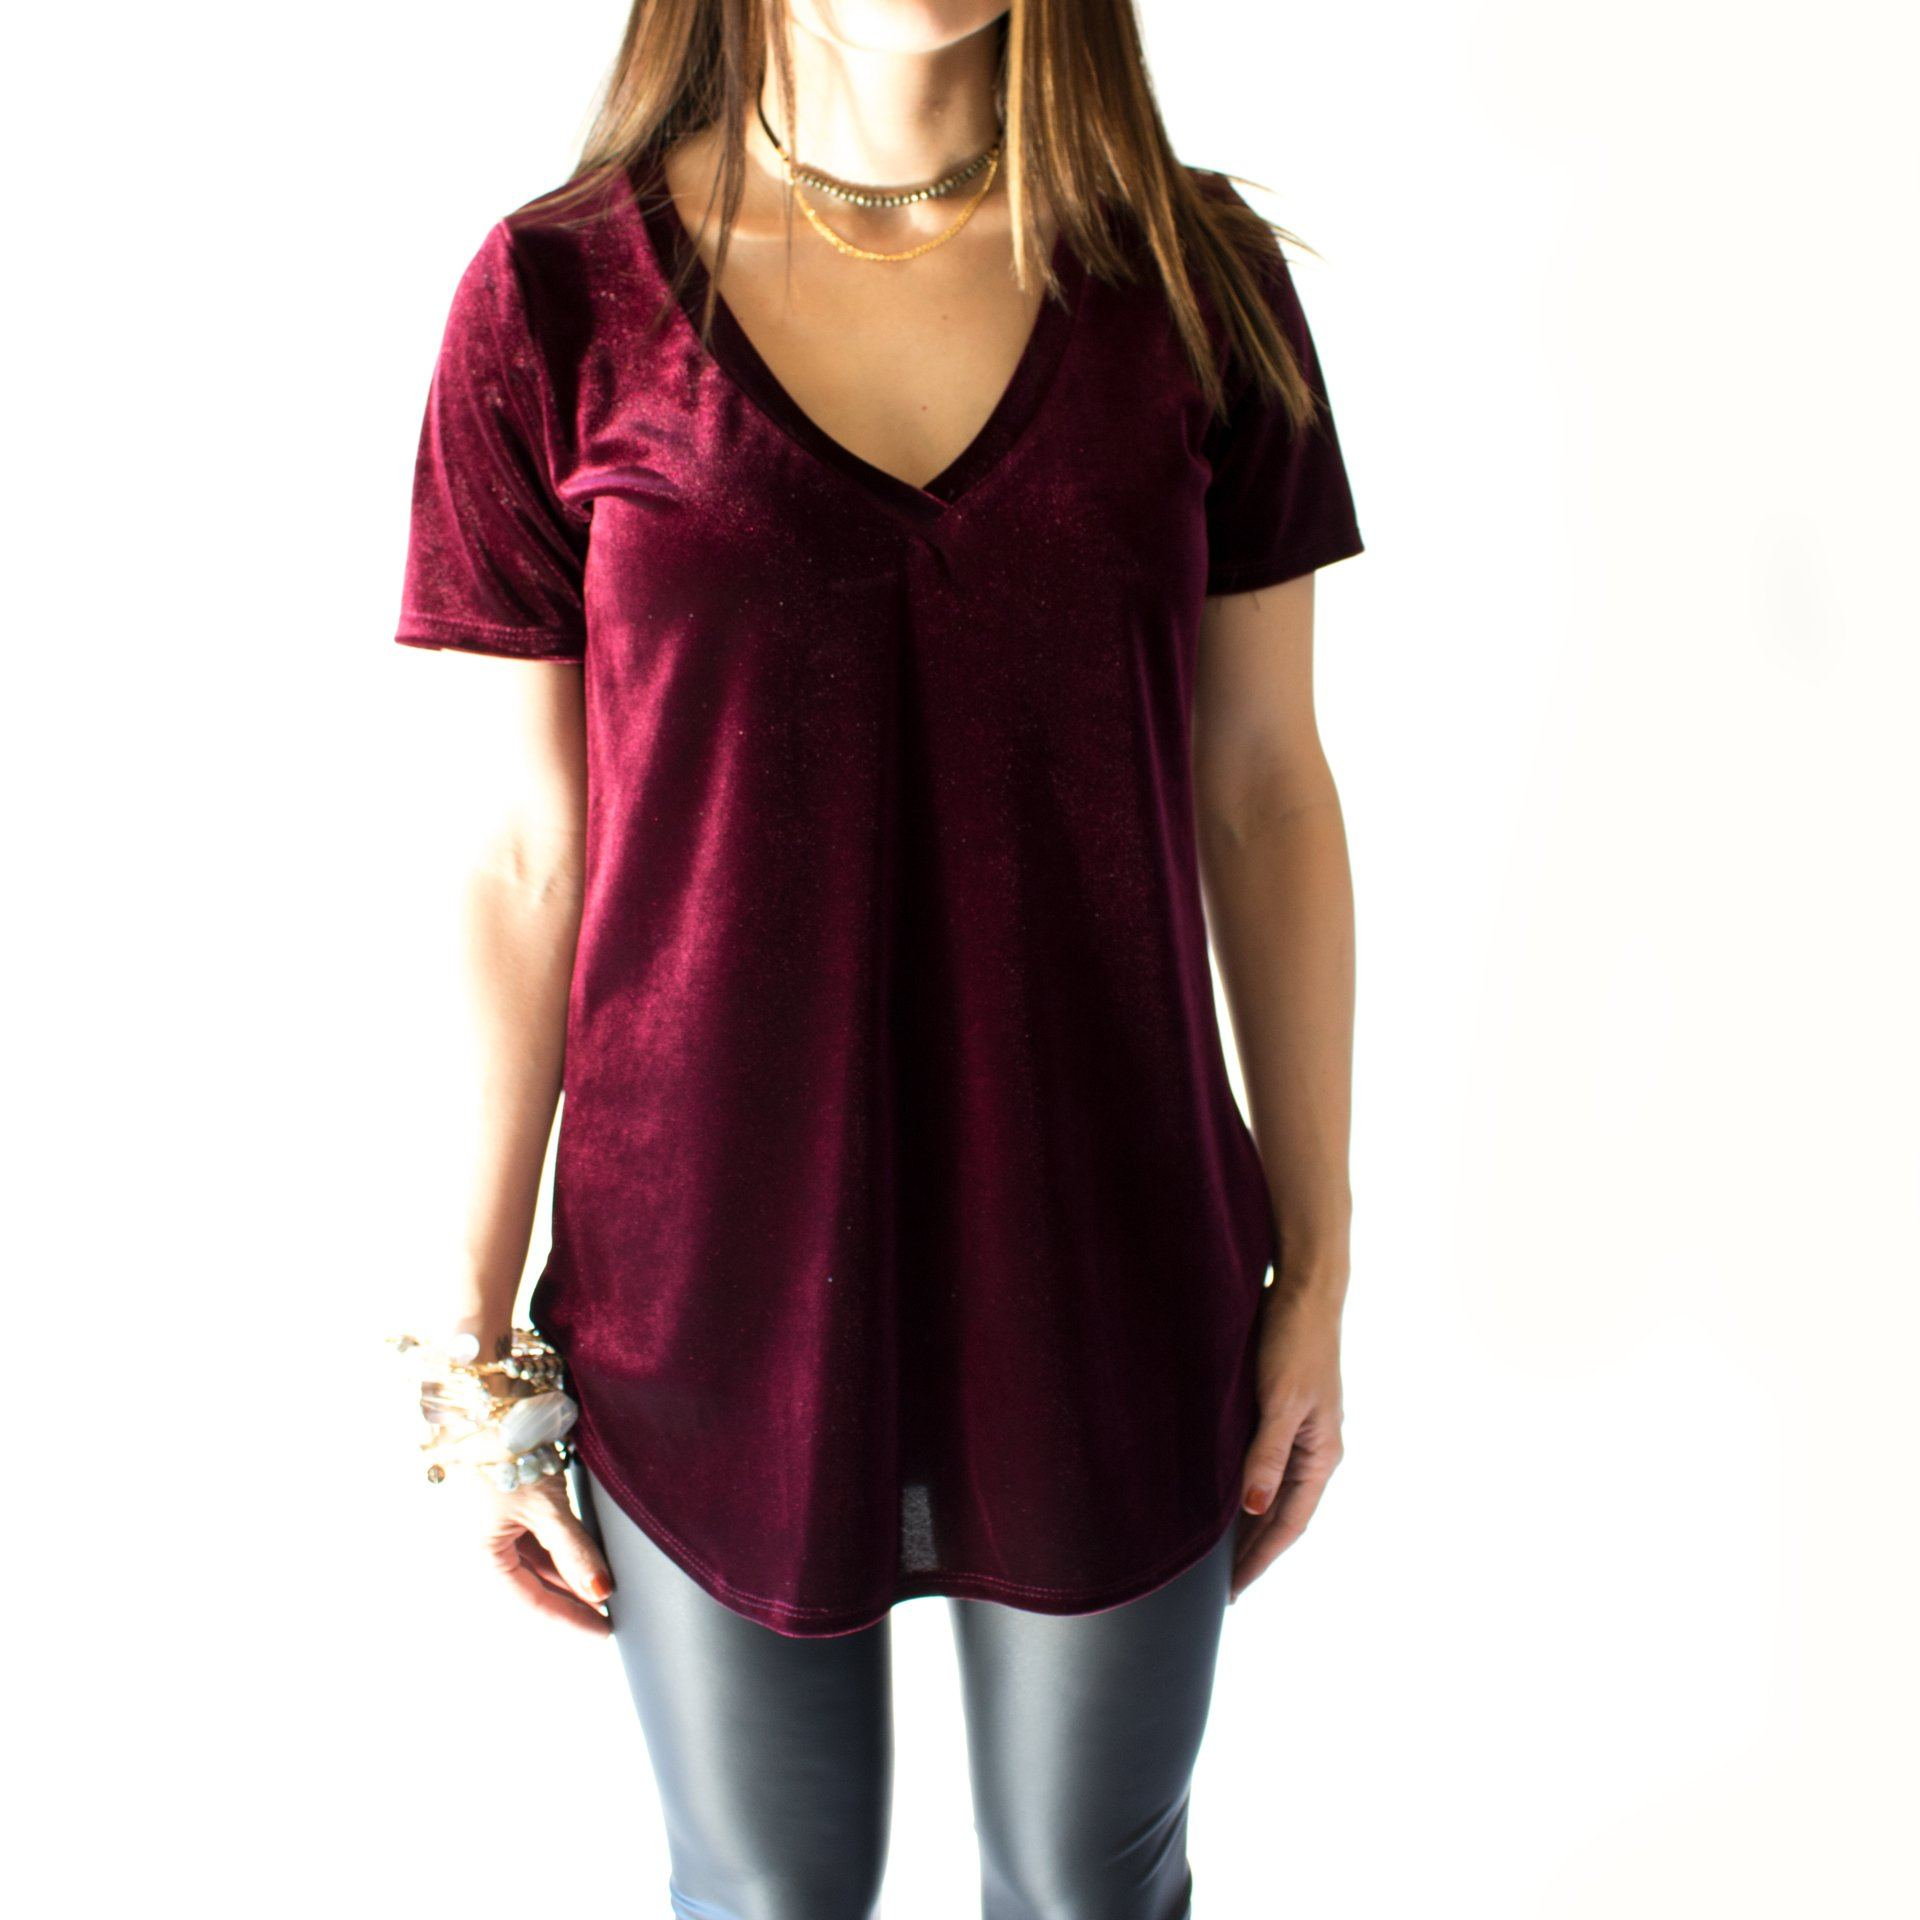 Velvet Short Sleeve V-Neck Top In Burgundy - Arlo and Arrows